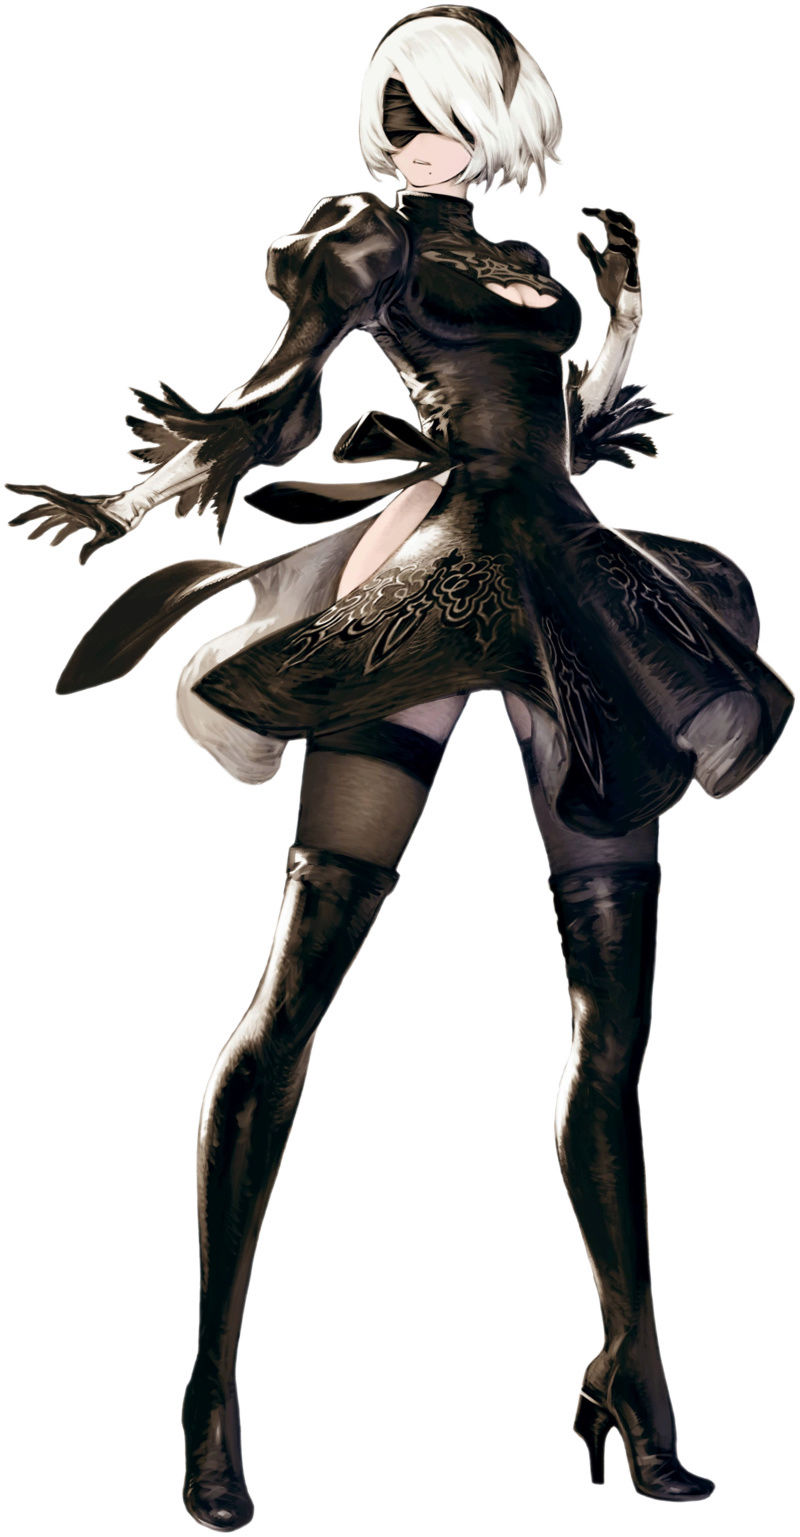 Victoria Wellhart, The Blind Beauty Yorha_11